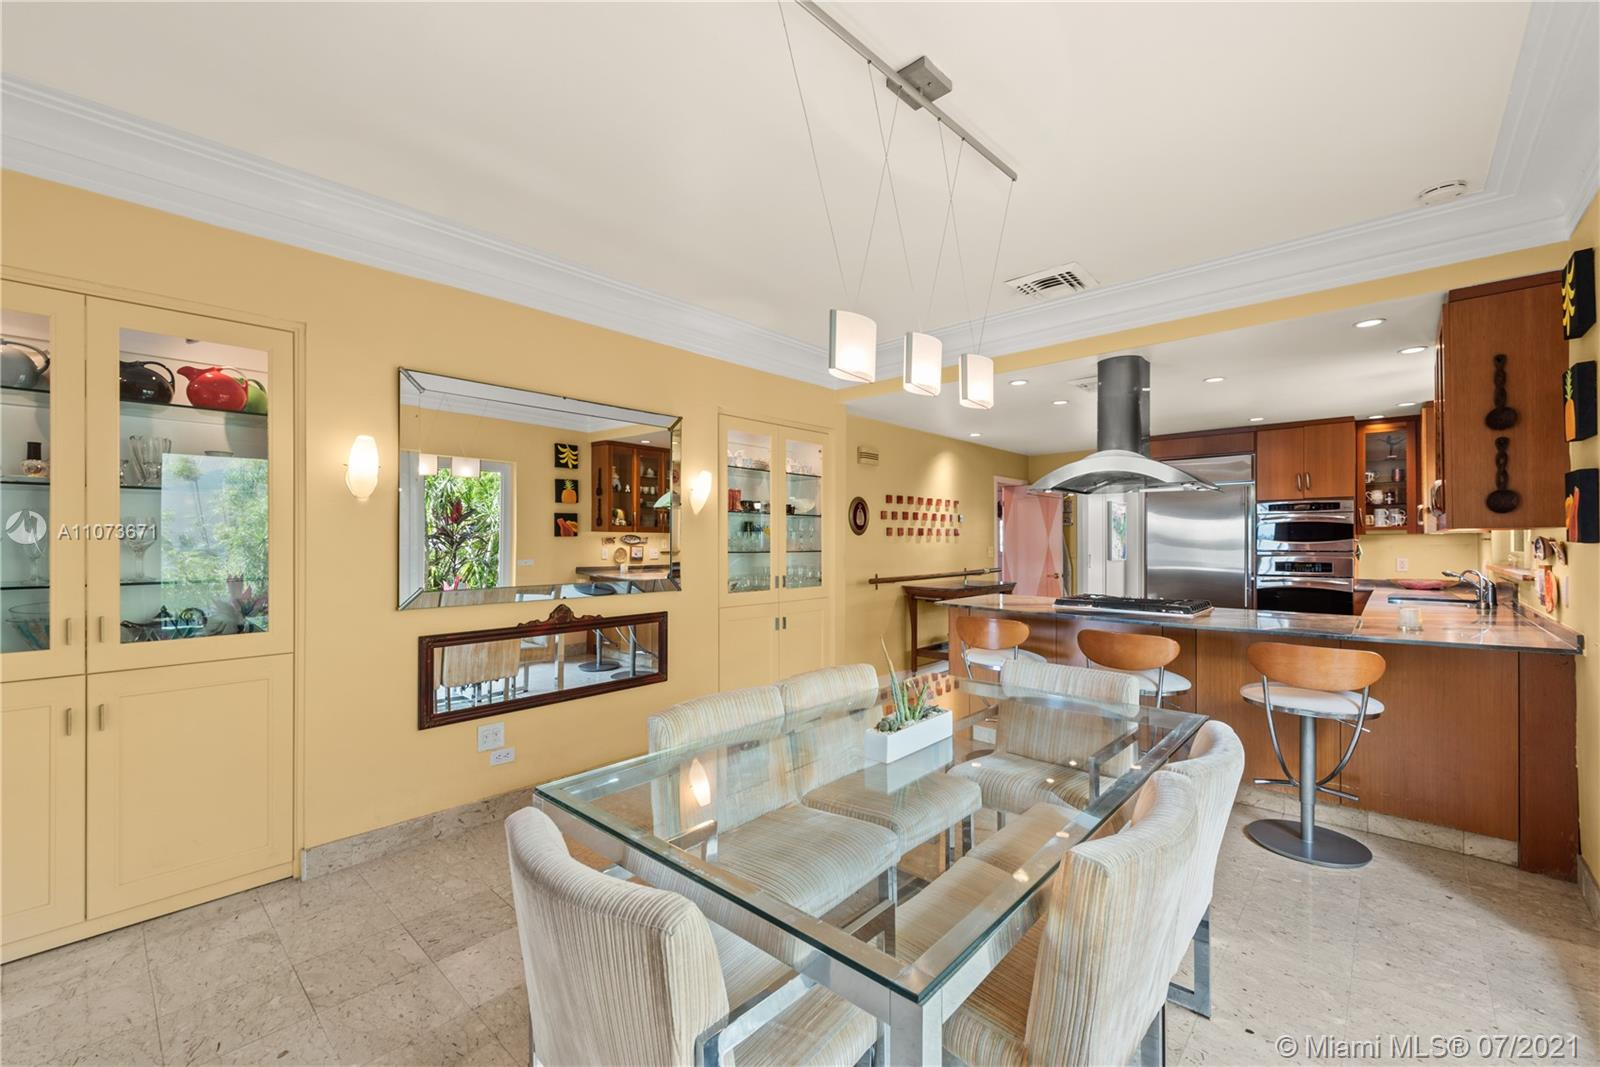 Photo of 7351 Belle Meade Island Dr, Home